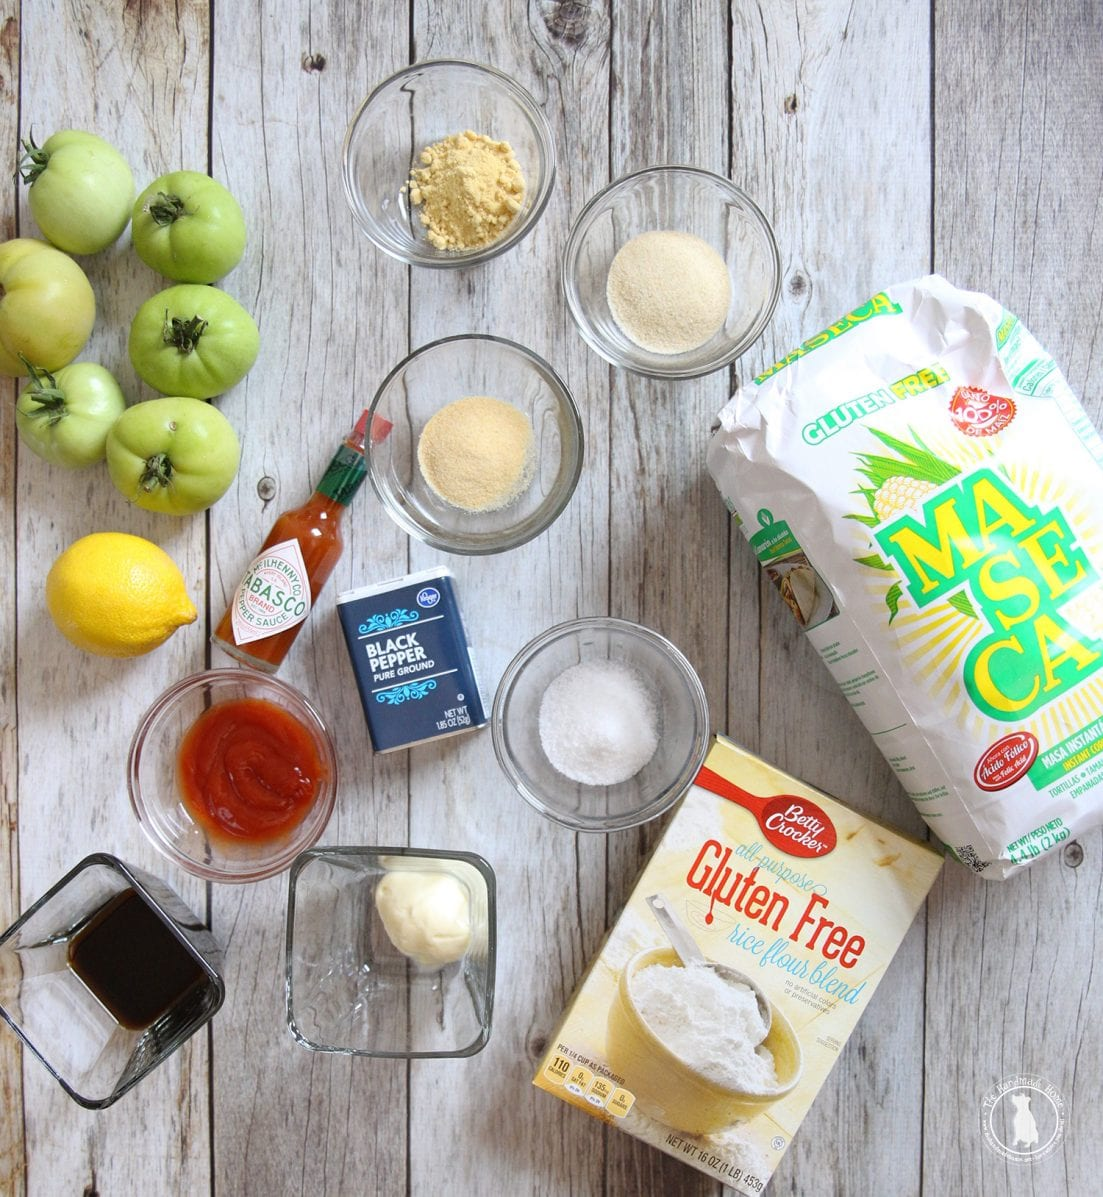 Gluten free sandwich - fried green tomato with comeback sauce - ingredients